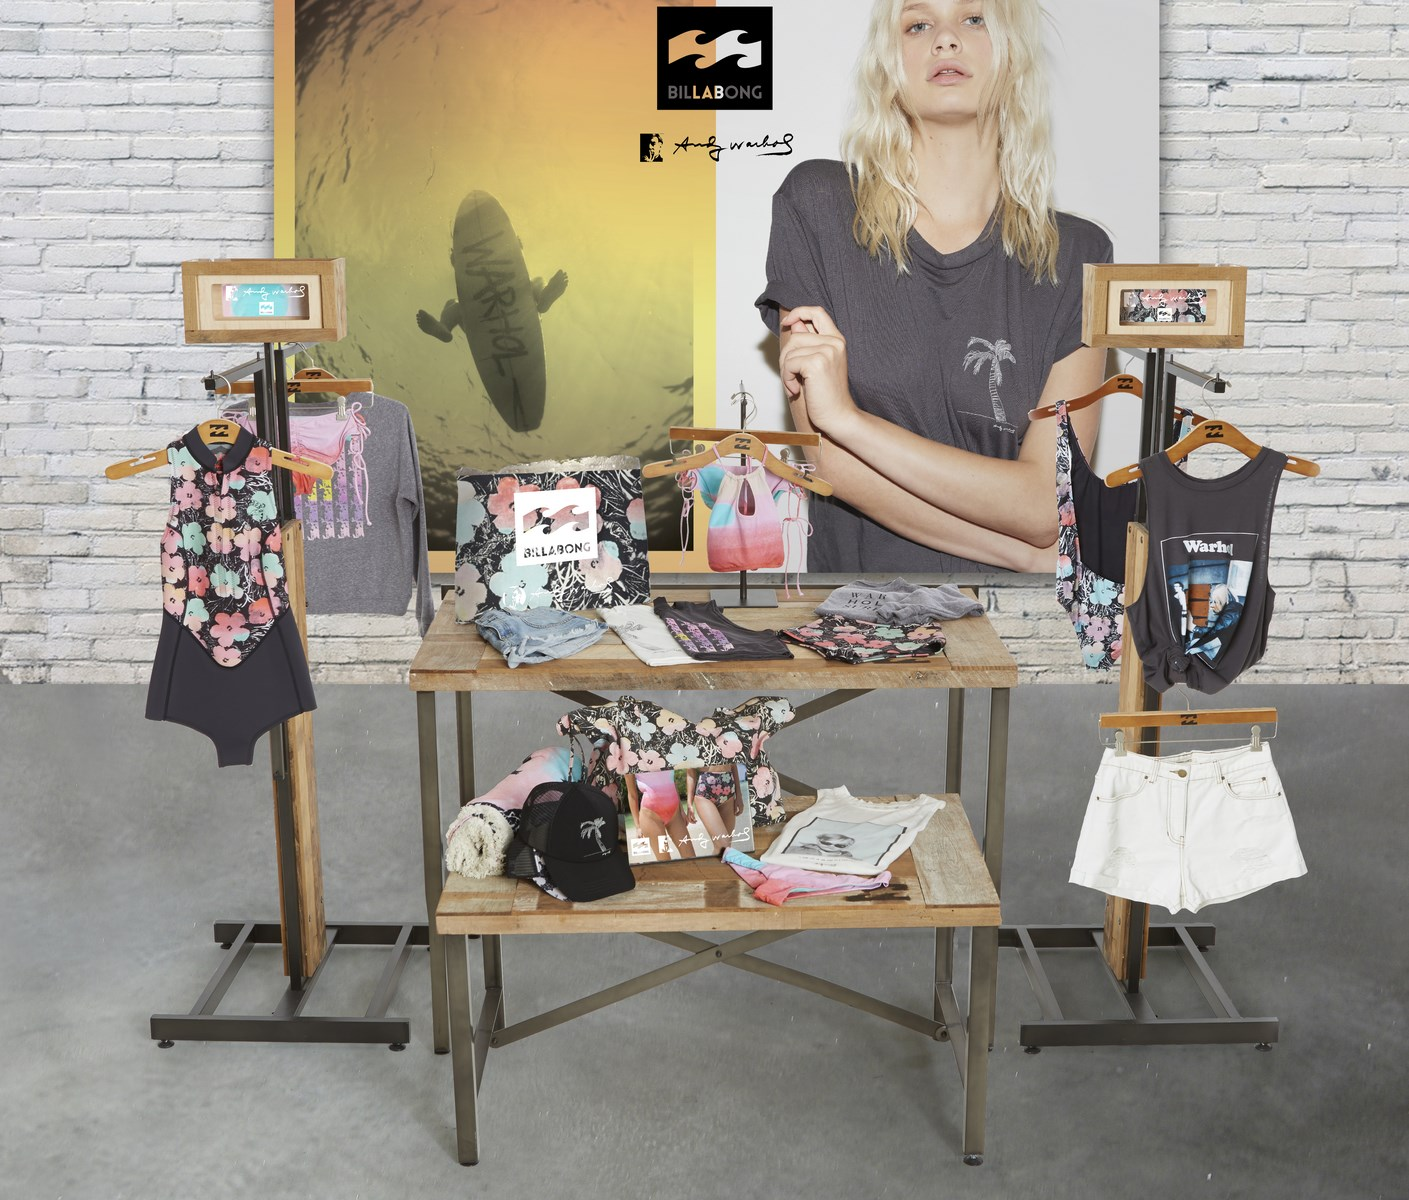 billabong-x-andy-warhol, warhol-surf, billabong-warhol, du-dessin-aux-podiums, dudessinauxpodiums